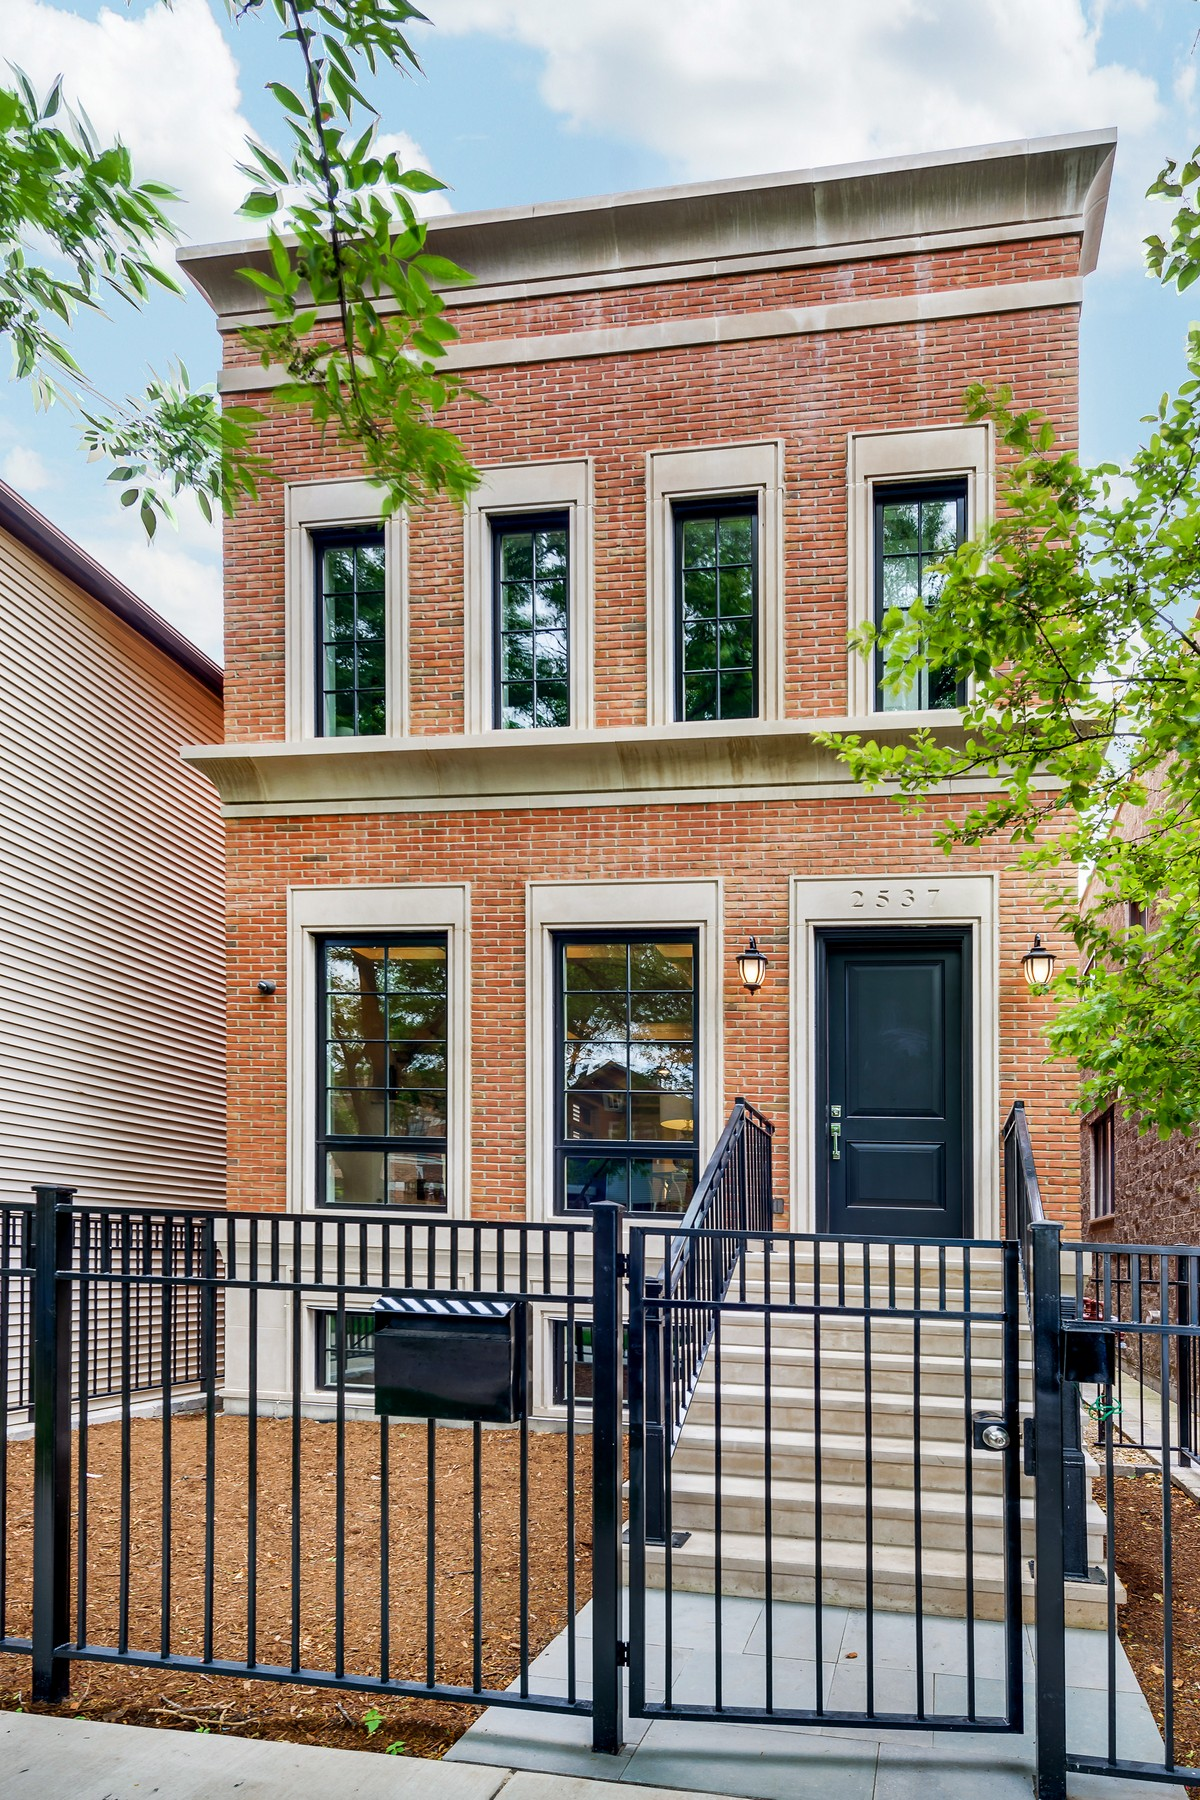 独户住宅 为 销售 在 Beautiful Complete Construction - Move In Ready 2537 N Marshfield Avenue Lincoln Park, 芝加哥, 伊利诺斯州, 60614 美国